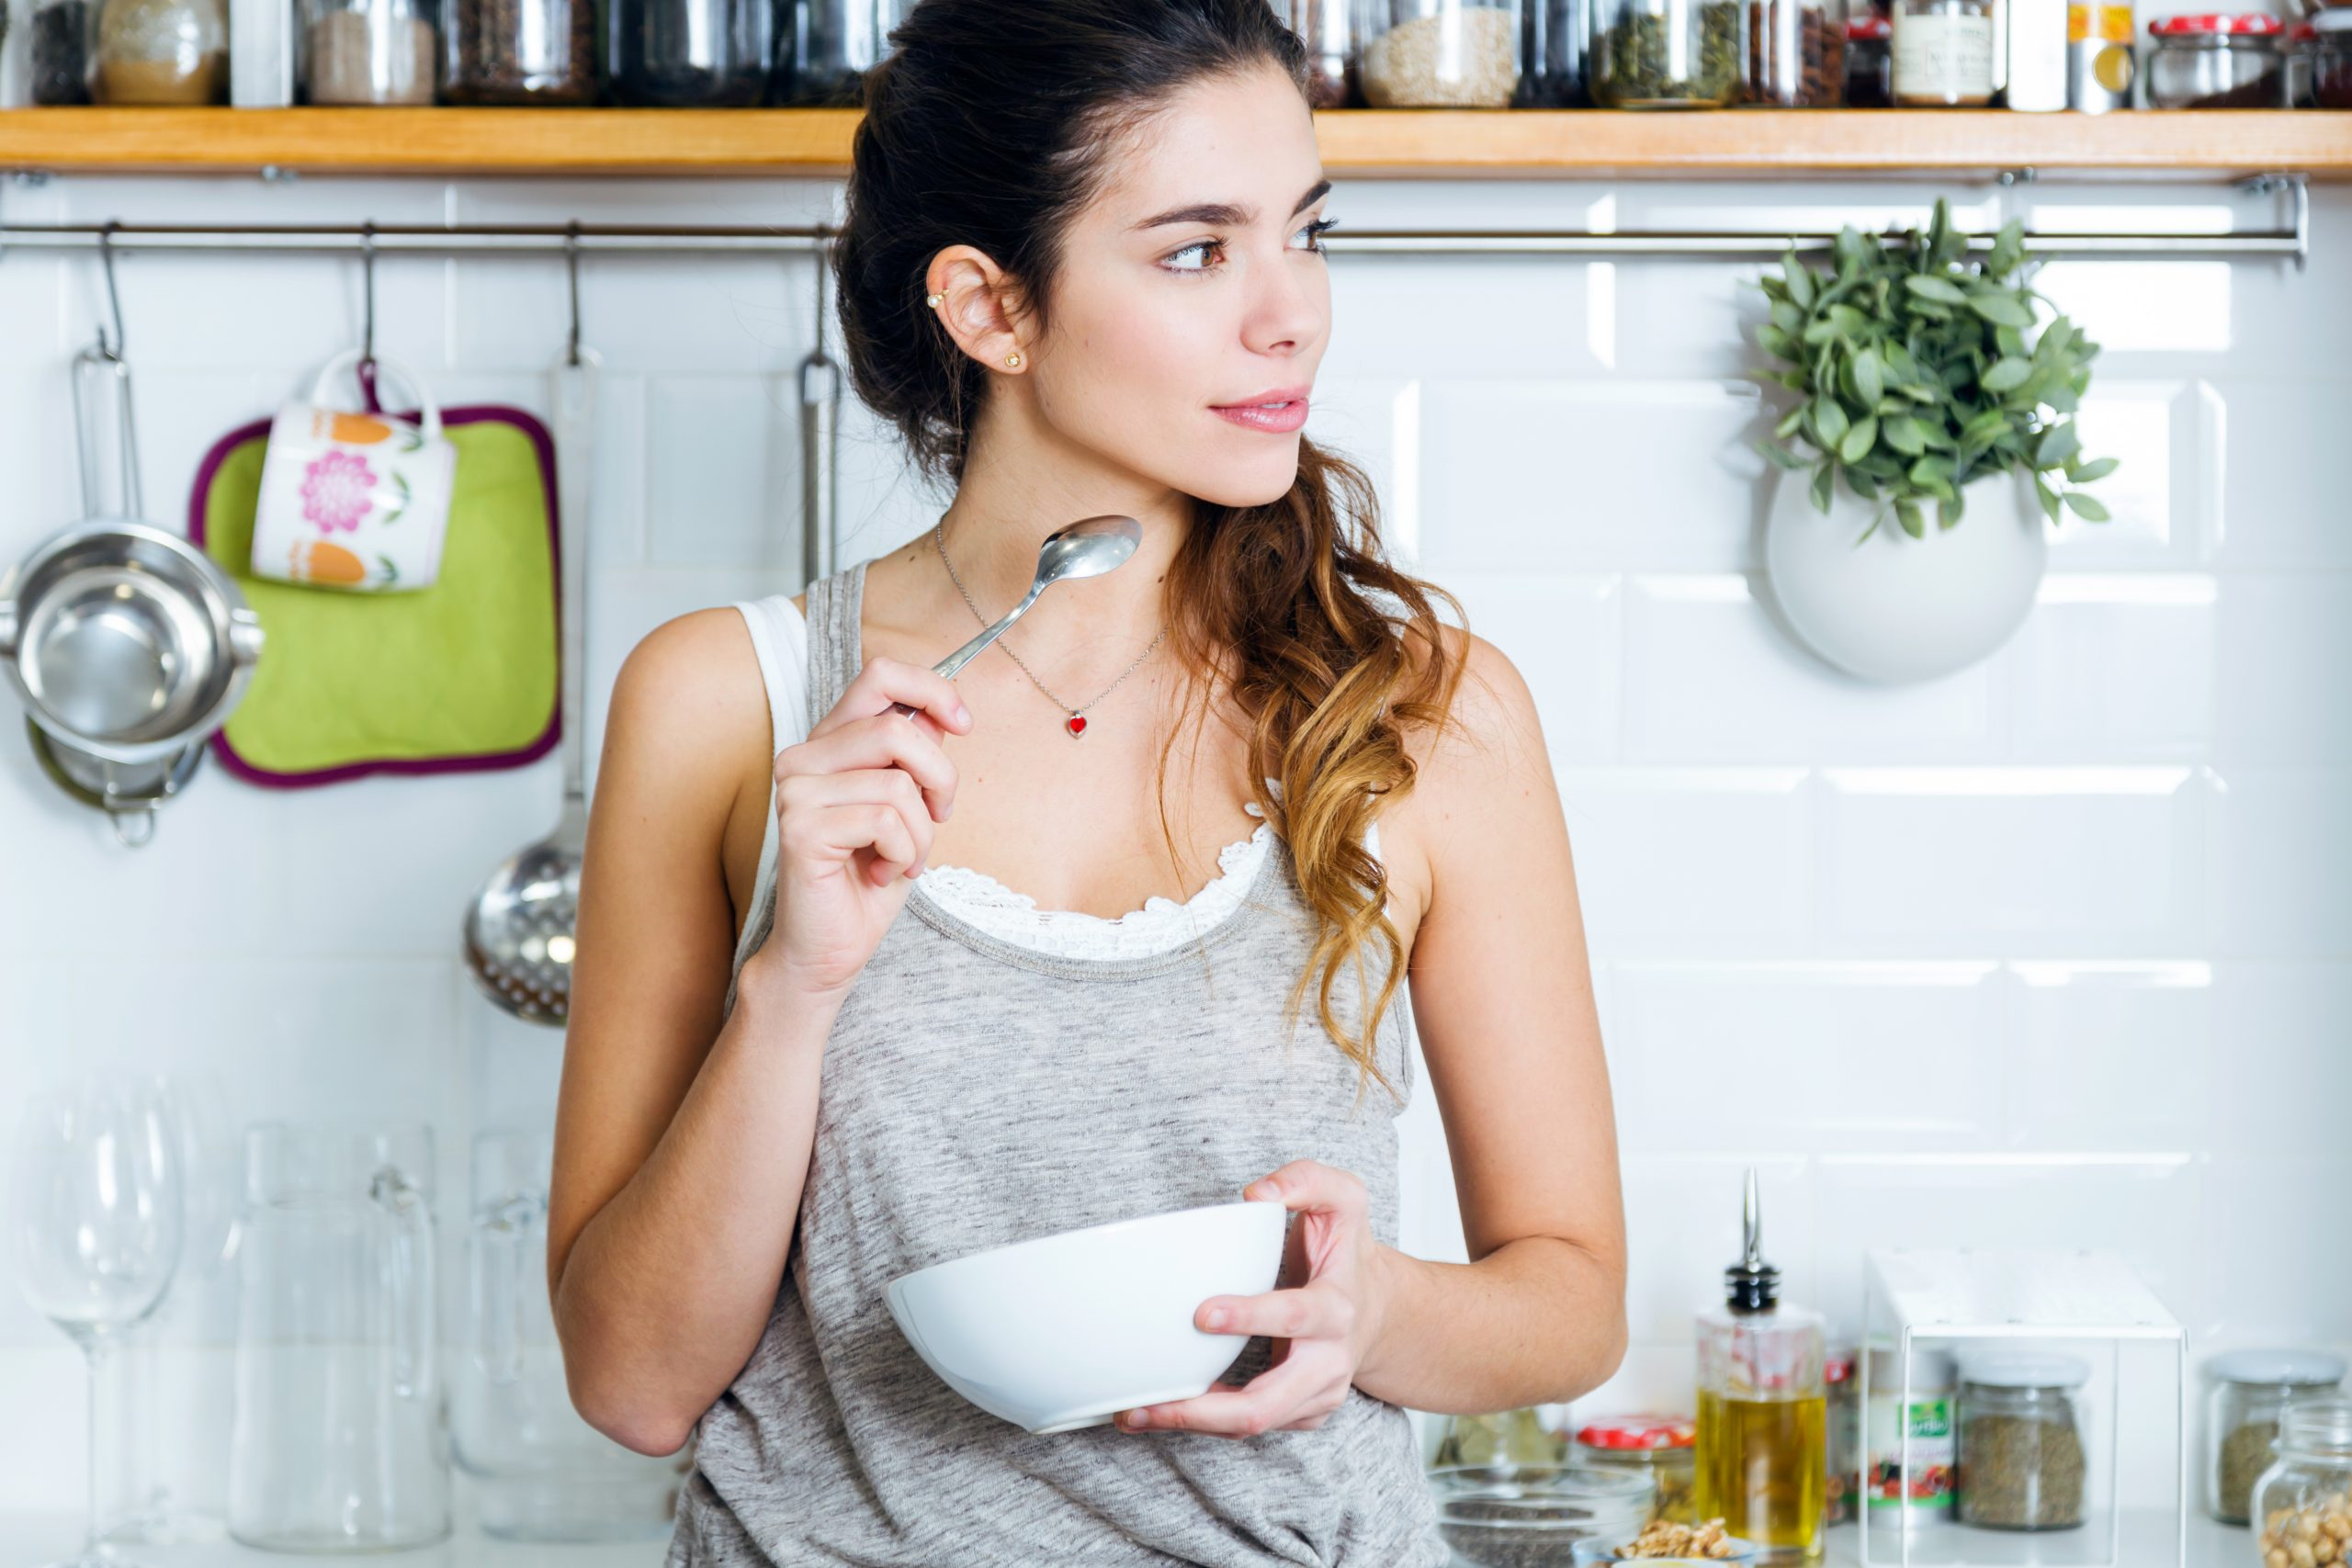 Learning to control your sugar cravings